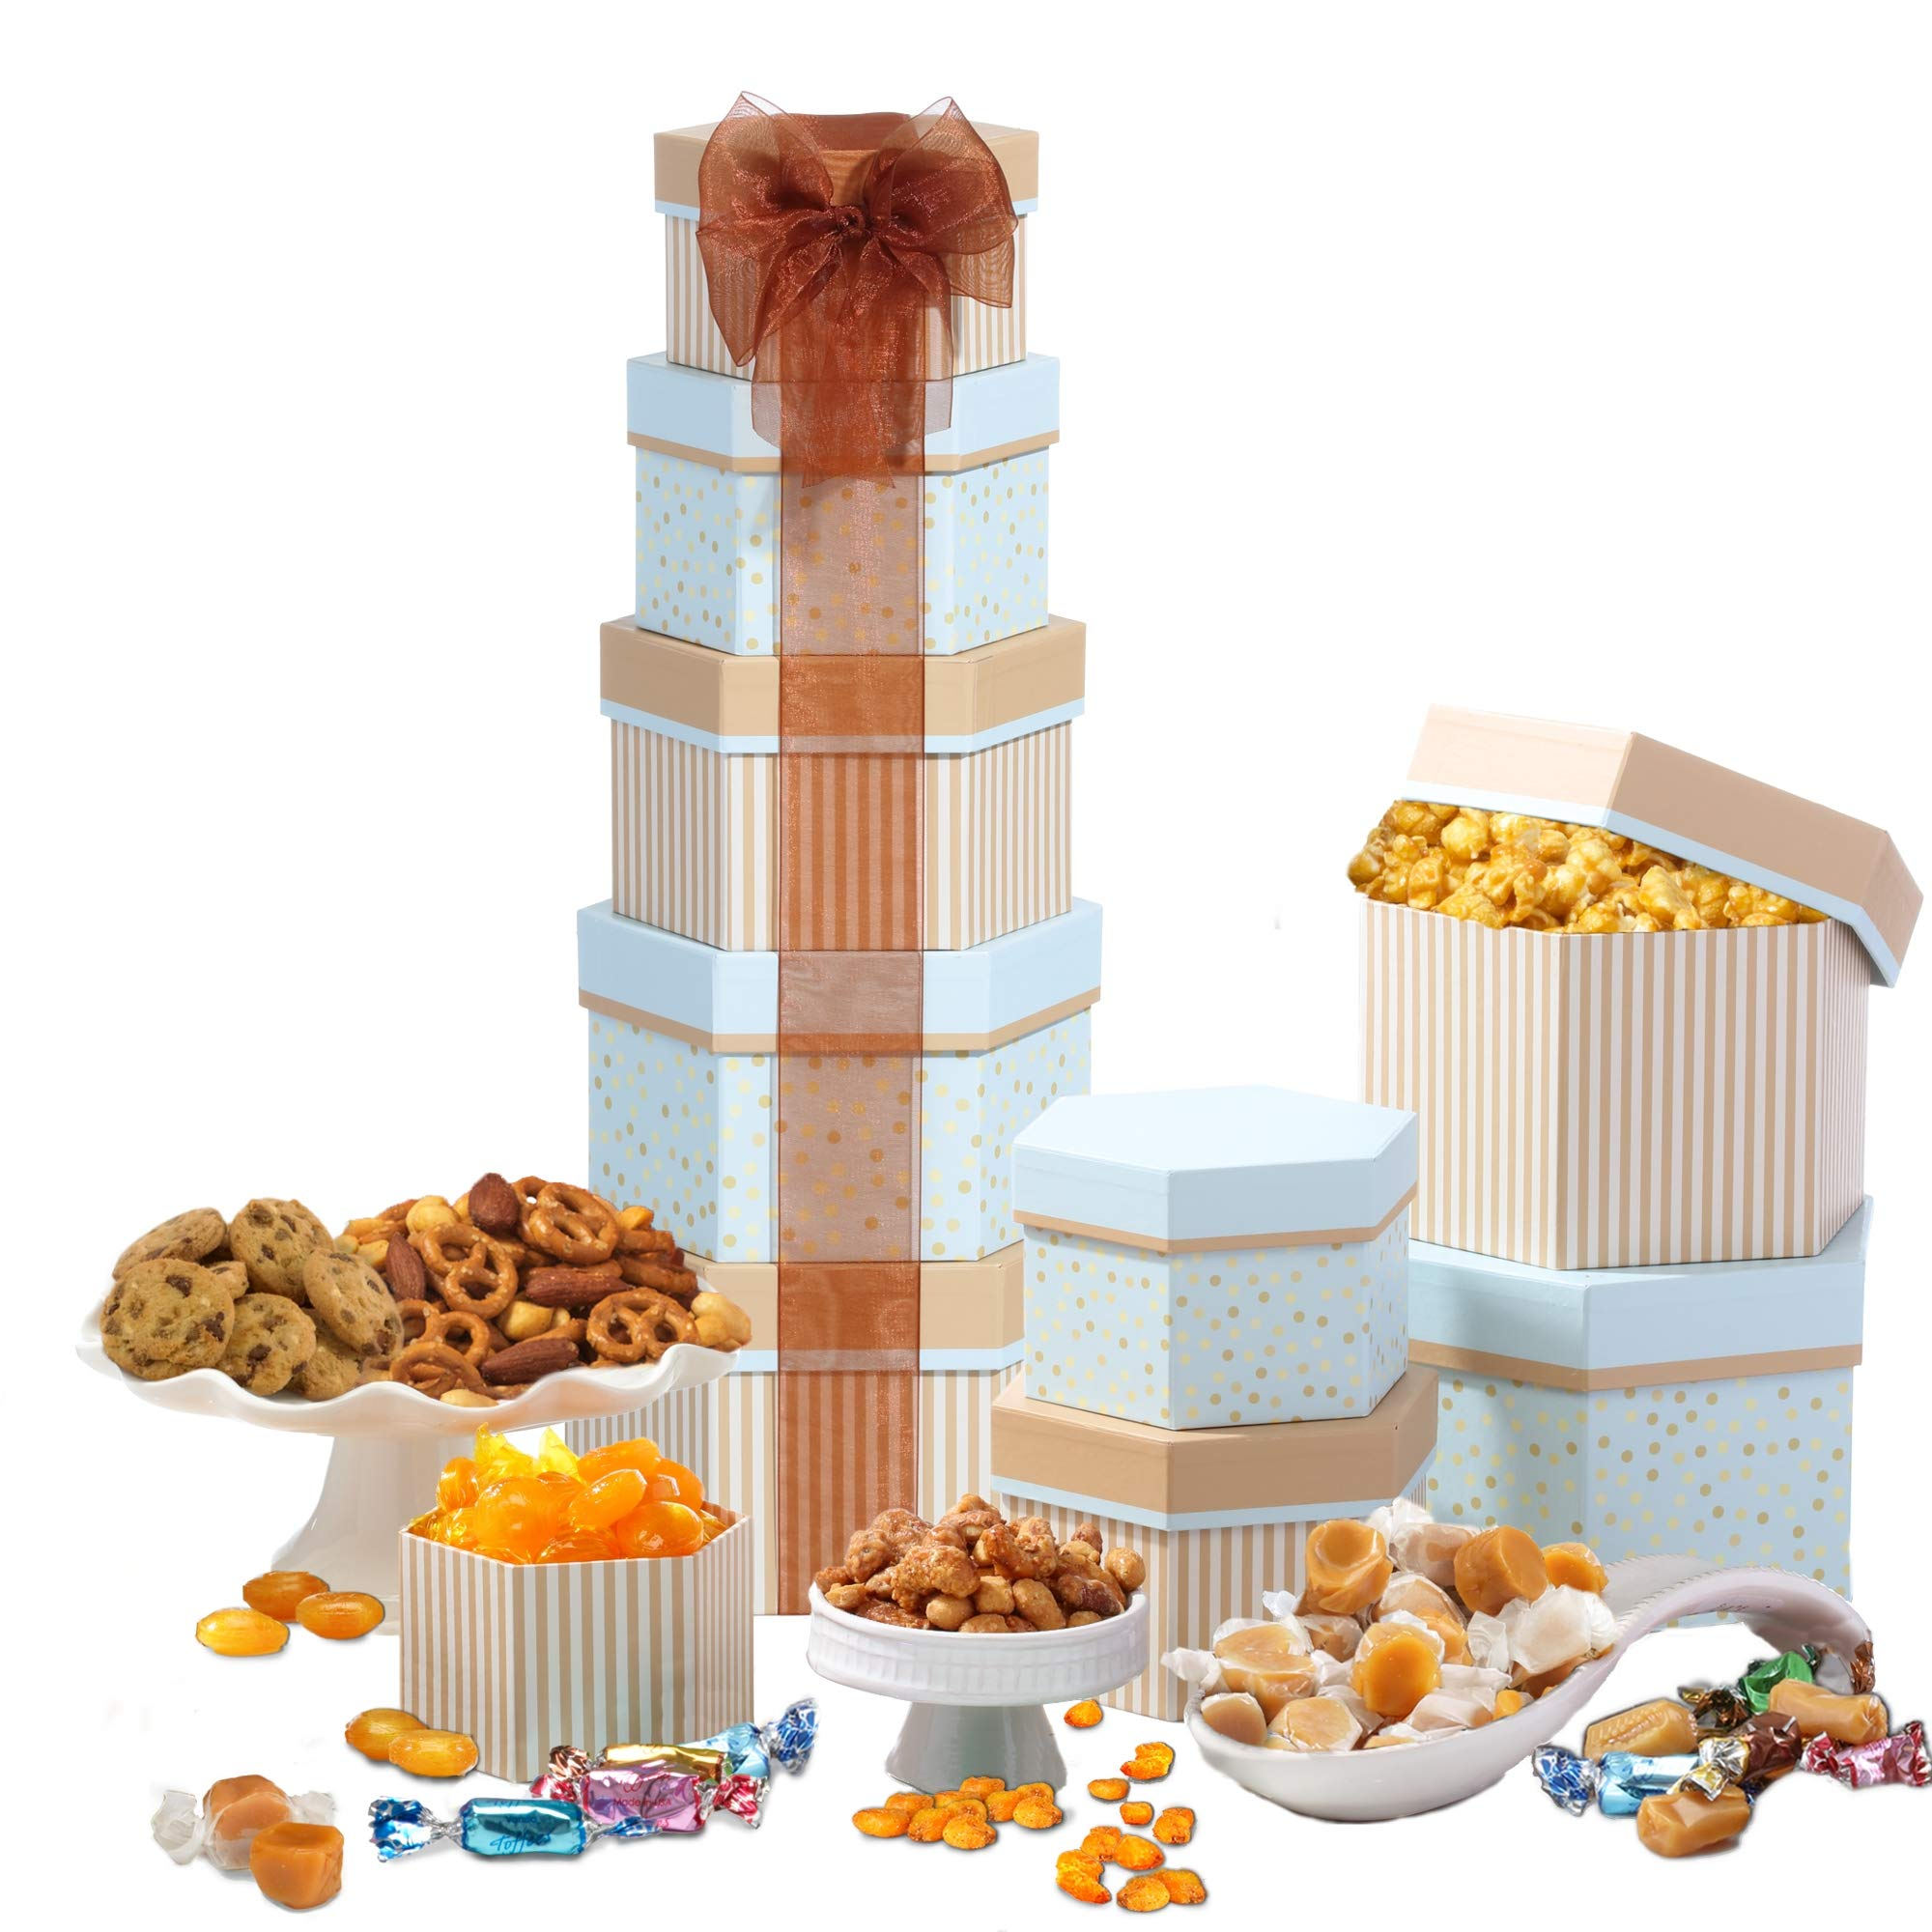 Broadway Basketeers Celebration Gift Tower with Sweets & Nuts by Broadway Basketeers